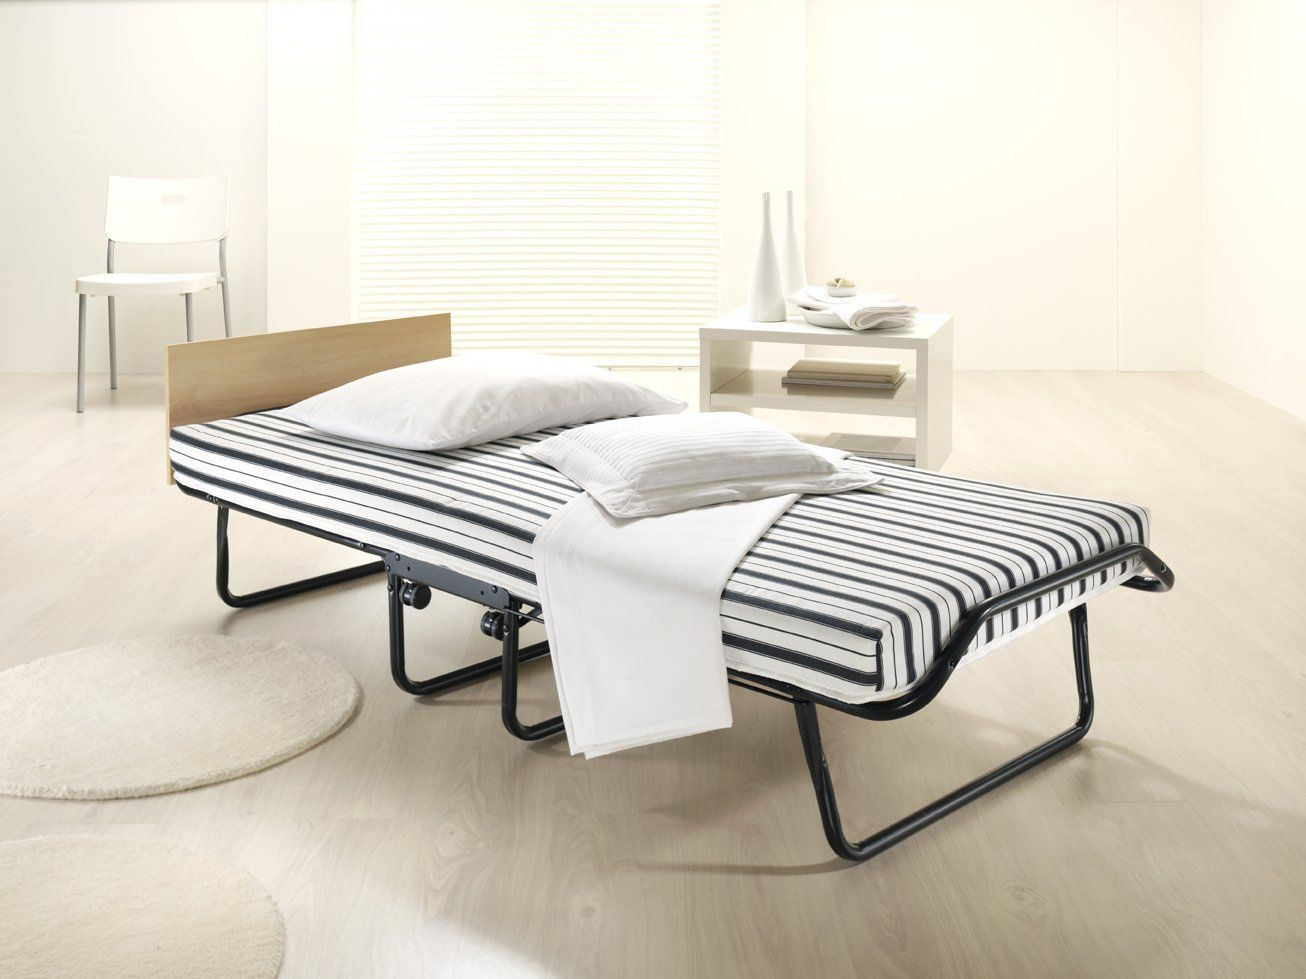 Image result for foldable bed frame Folding guest bed